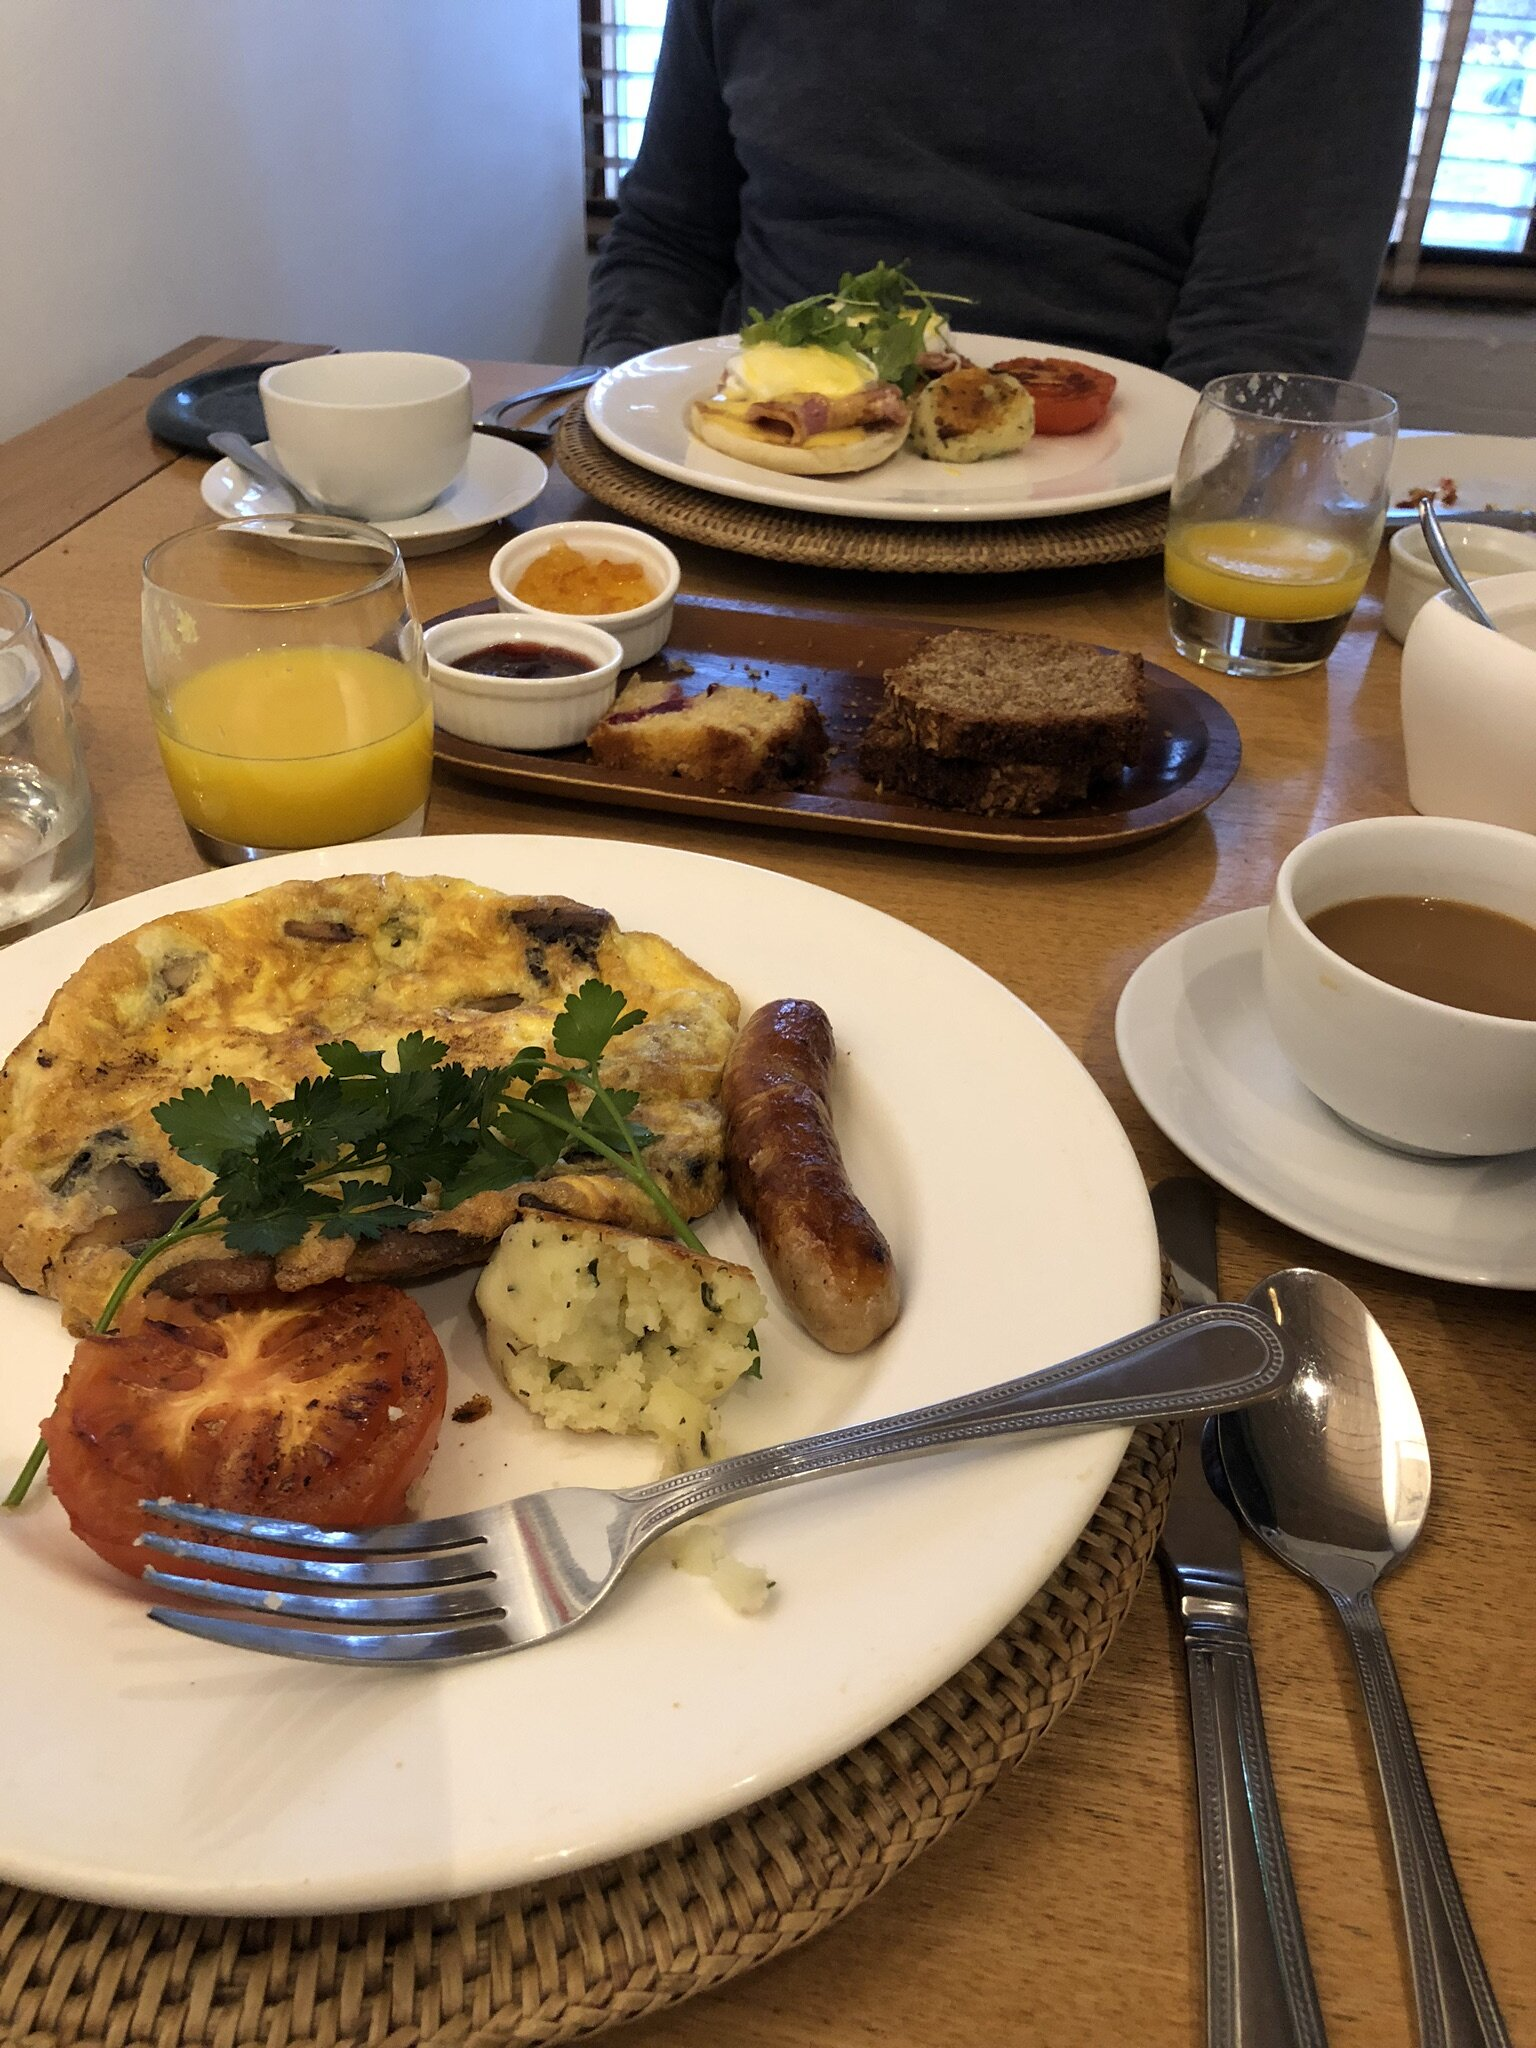 The ah-mazing breakfast at Number 31 Hotel!